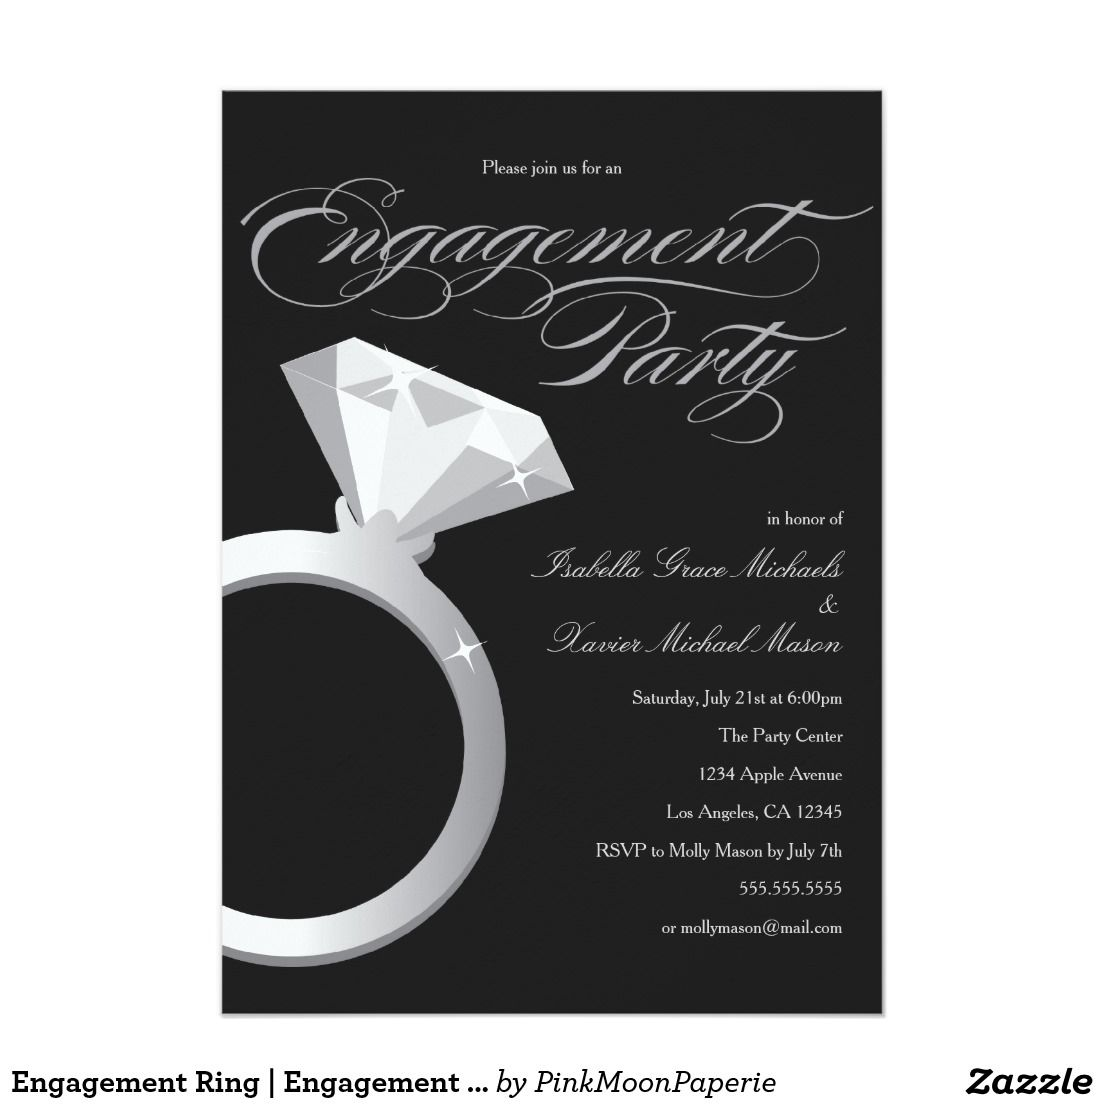 Engagement Ring   Engagement Party Invitation   Engagement party ...